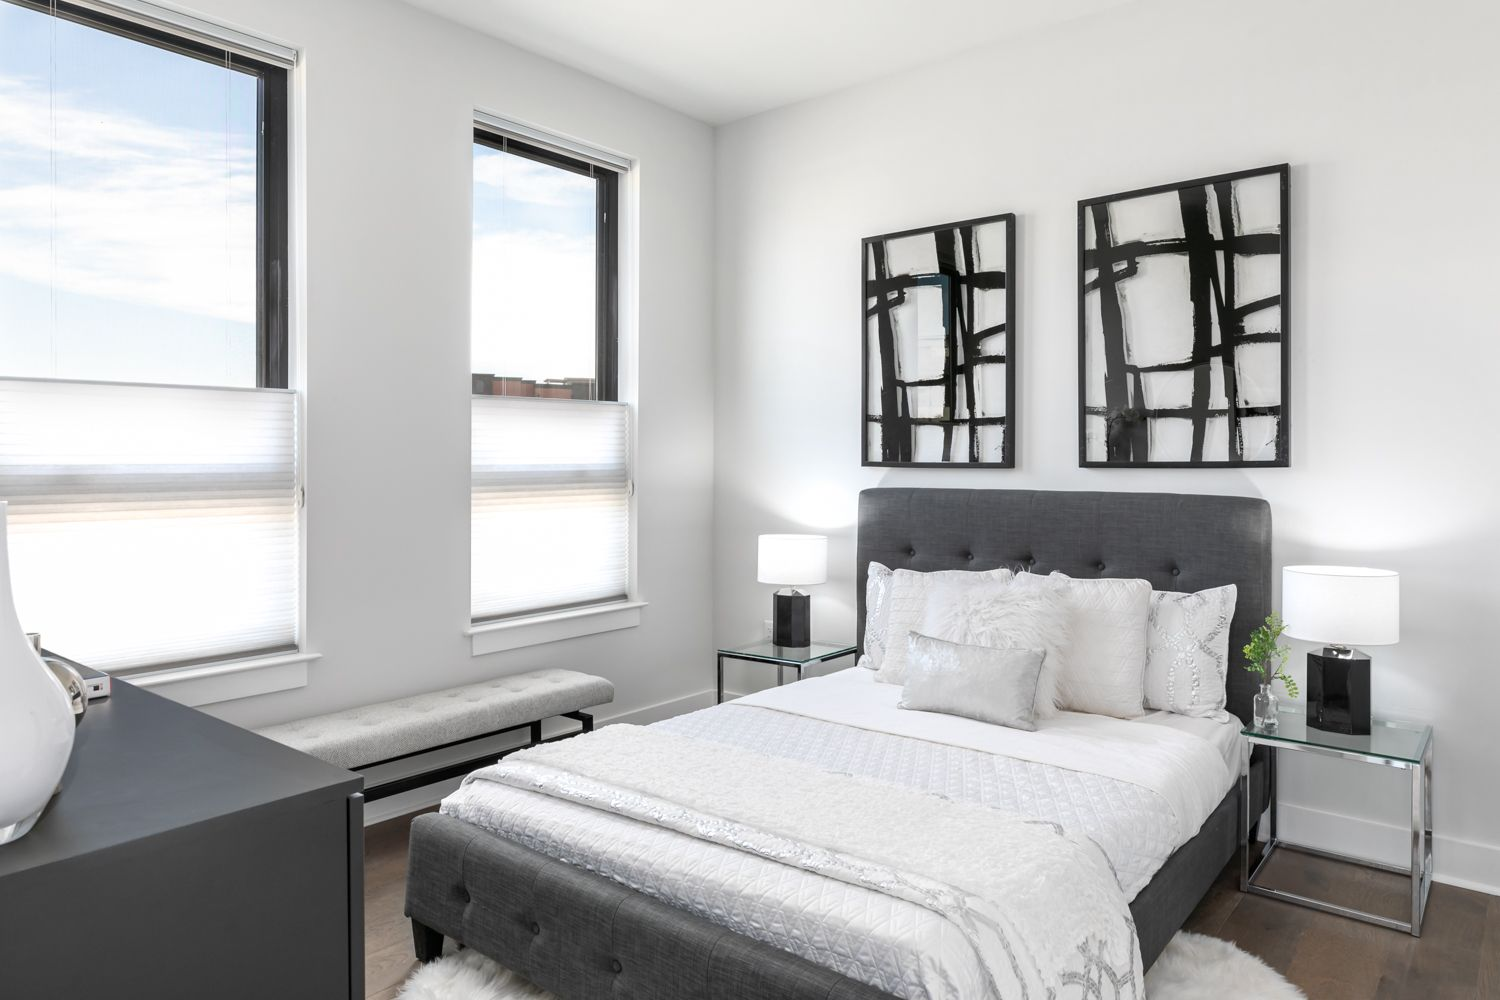 Bedroom featured in The Broadway A By McWilliams|Ballard  in Washington, VA